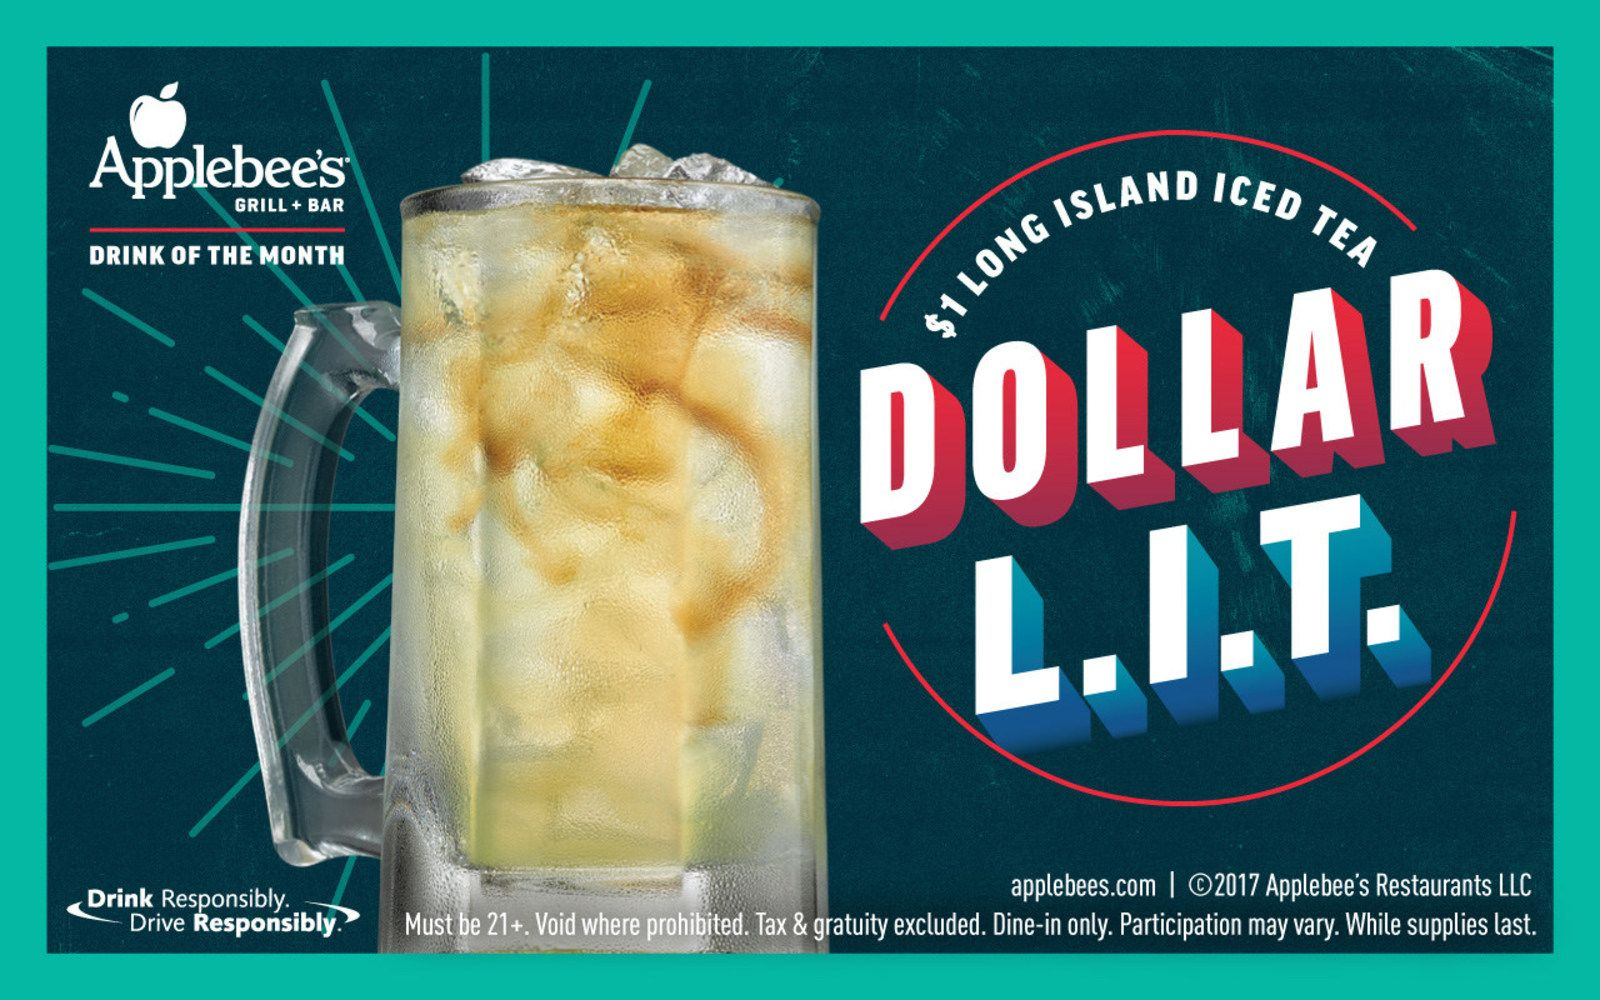 Applebee's Has $1 Long Island Iced Tea the Entire Month of December